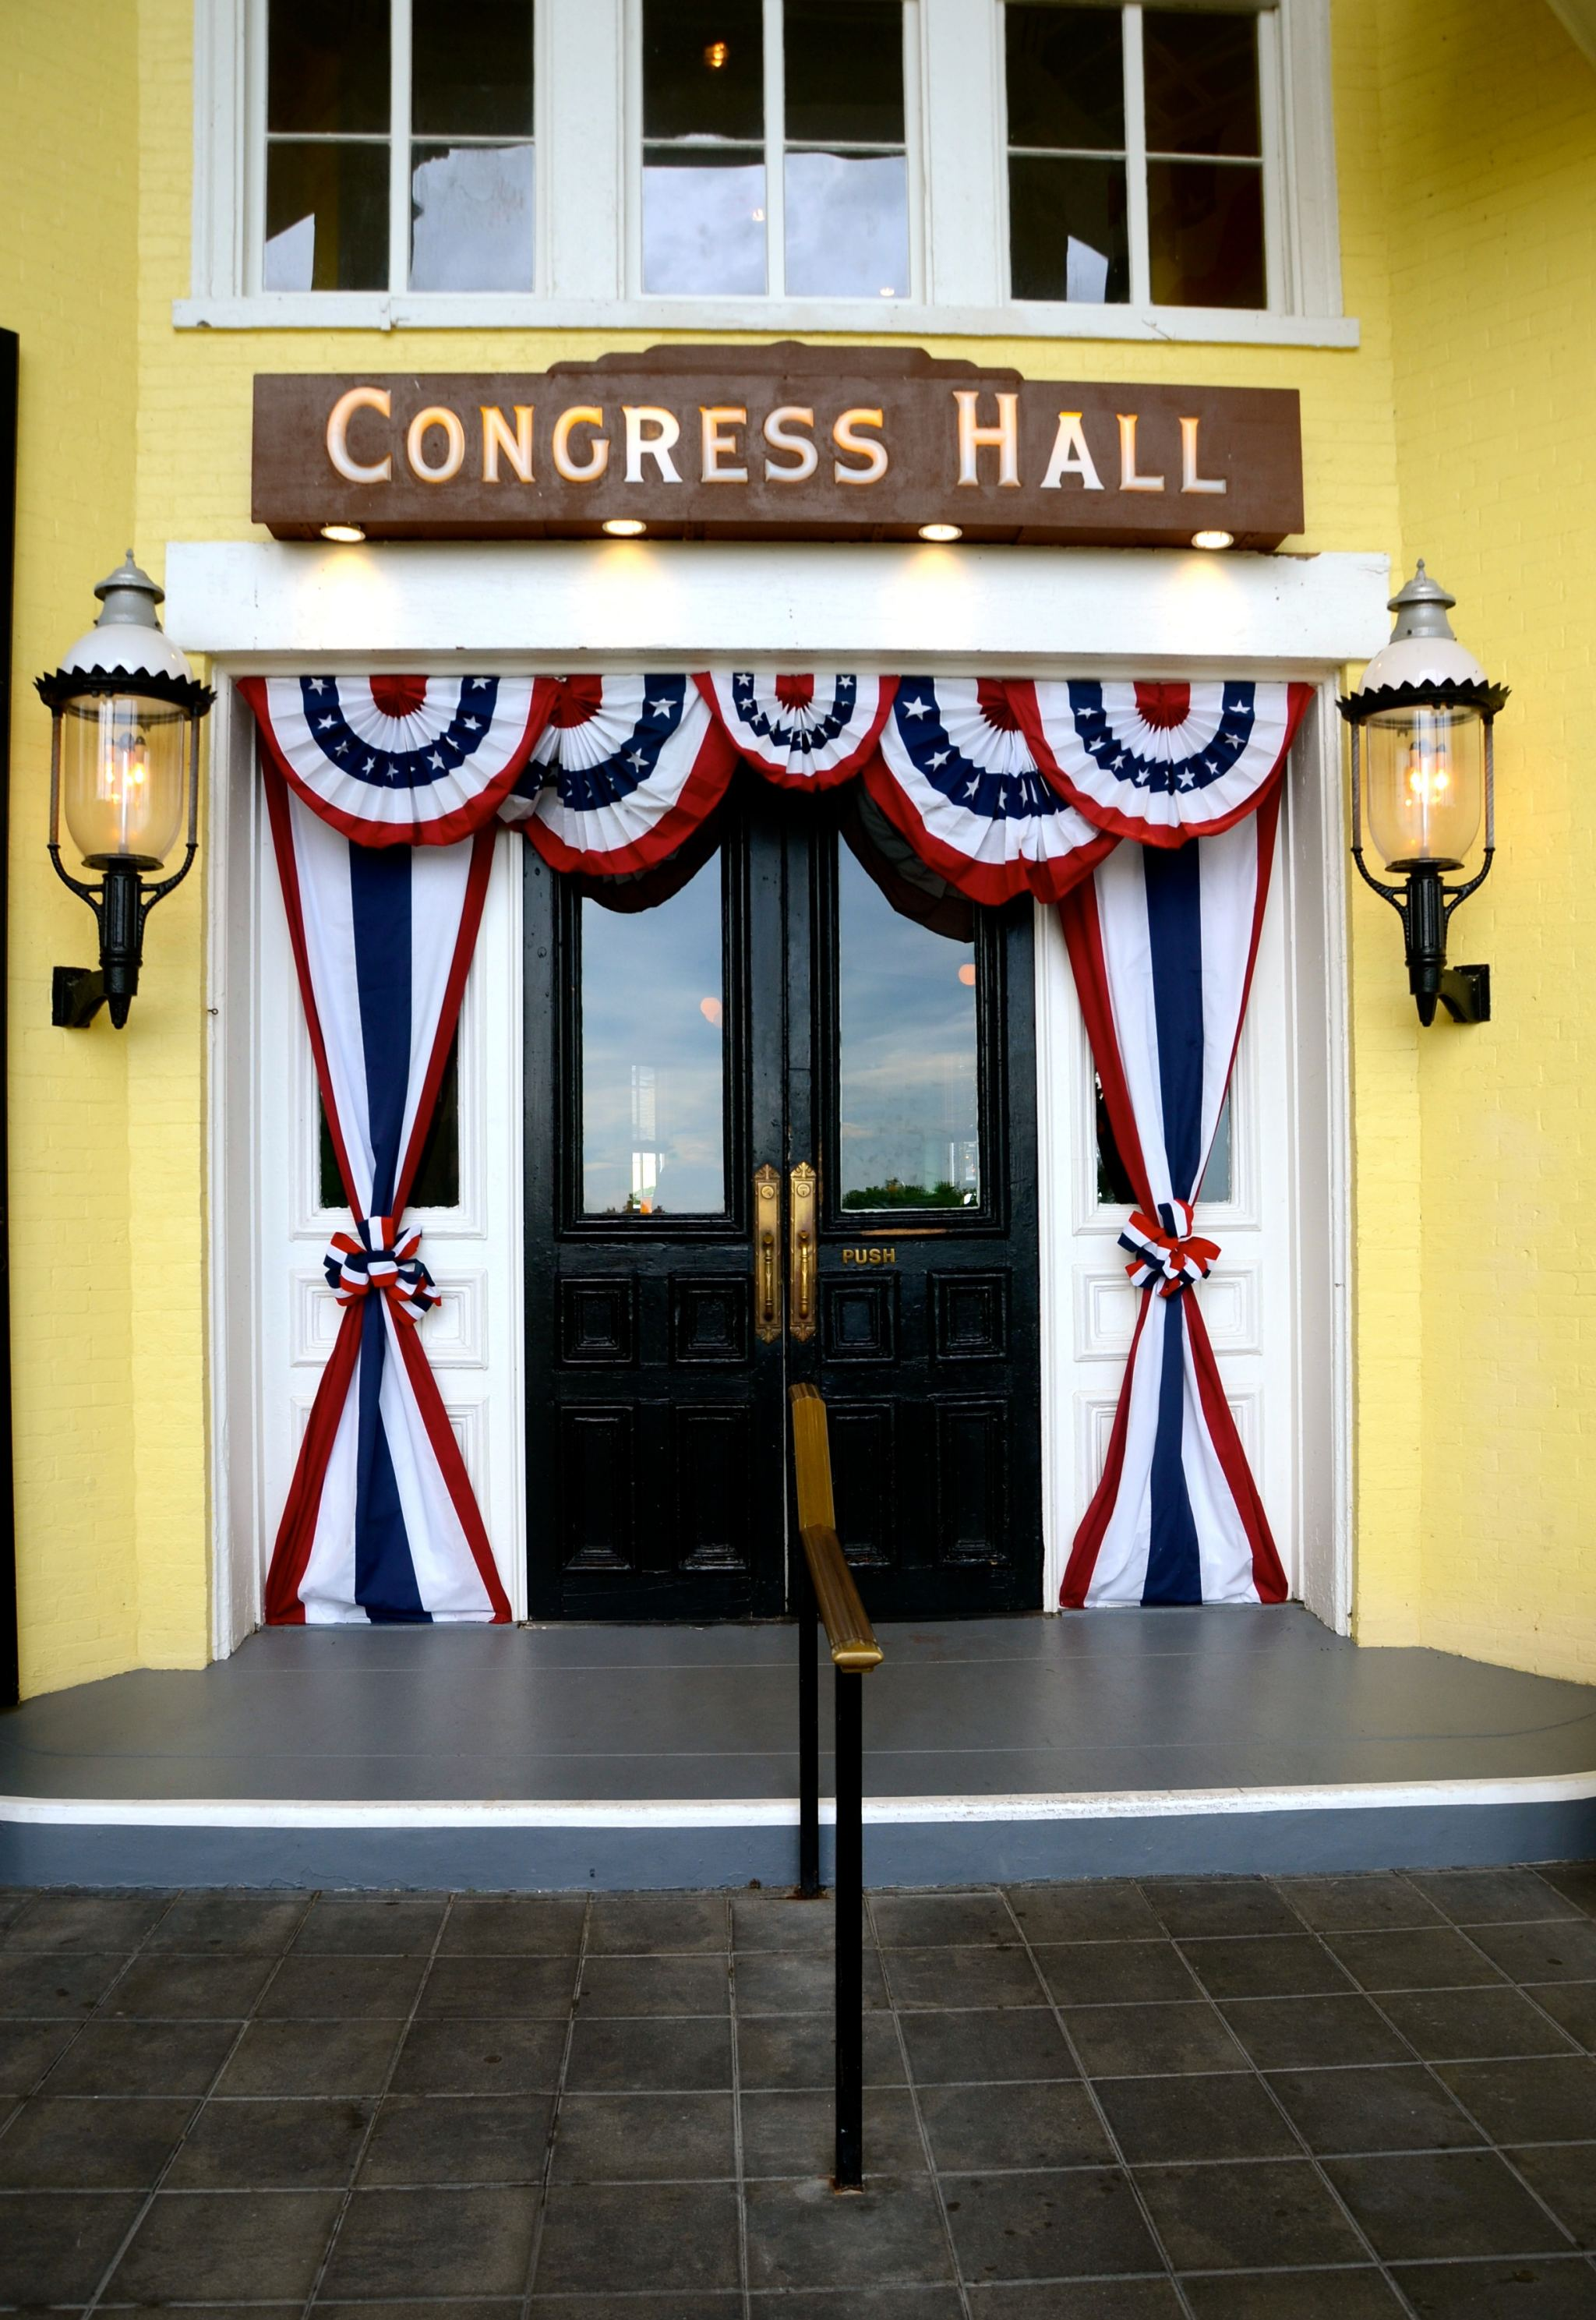 Congress hall hotel's entrance in Cape May, NJ with Independence Day decor.